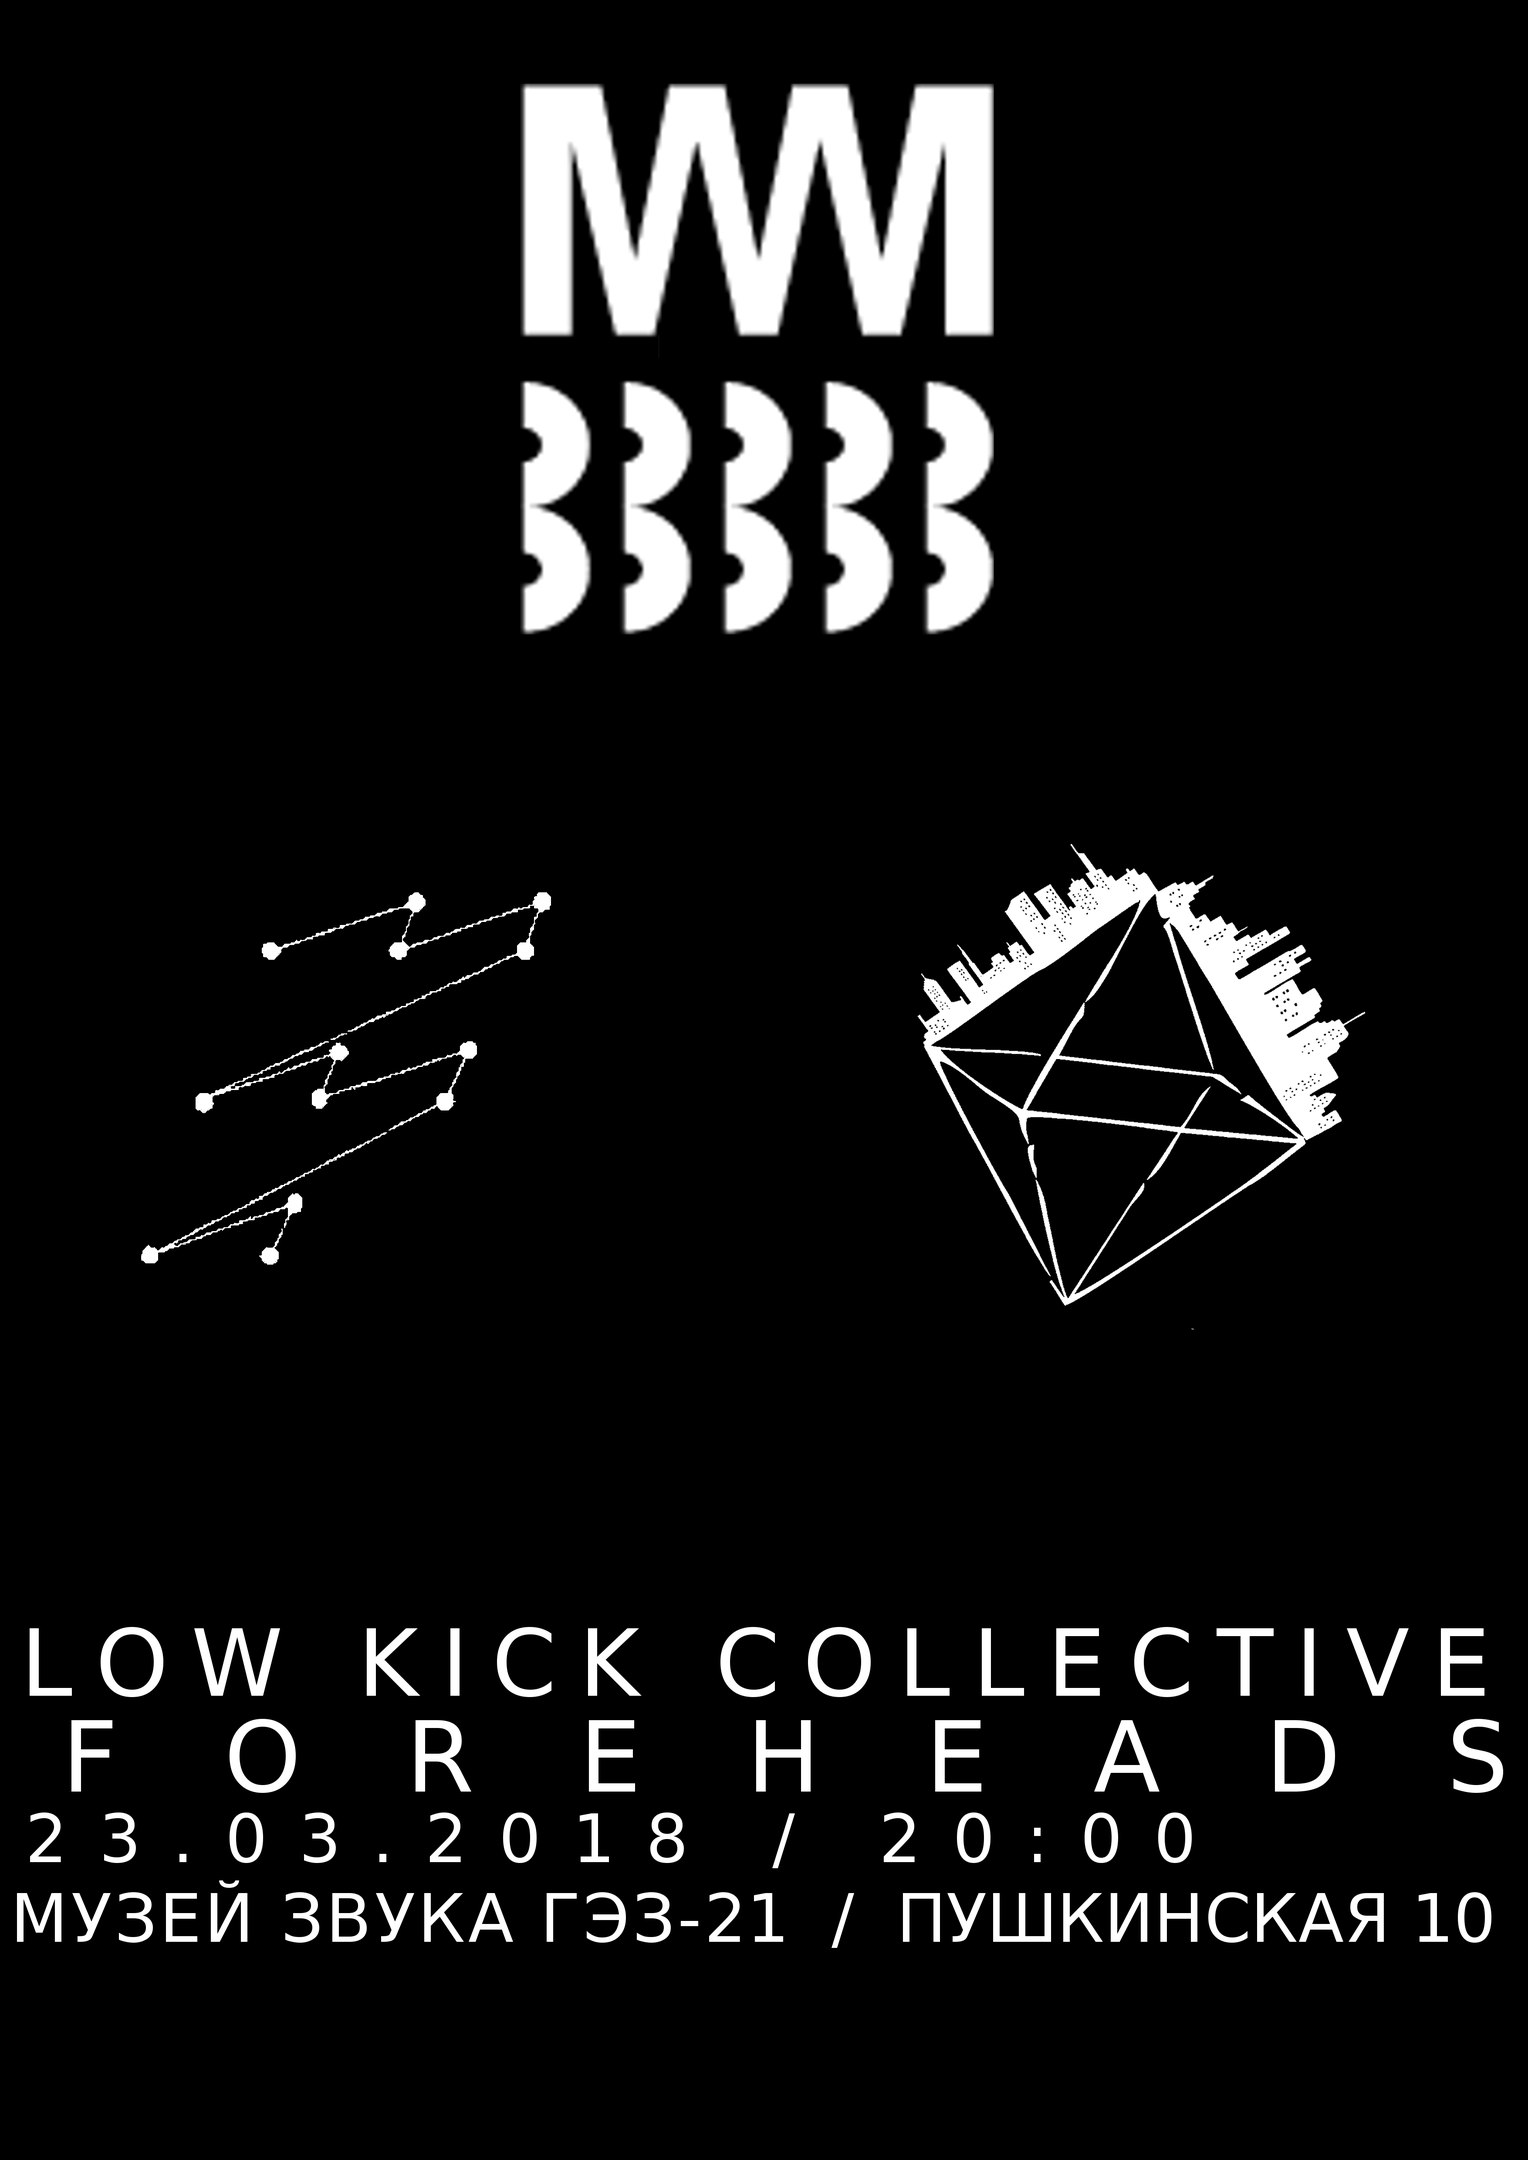 Low Kick Collective / Foreheads